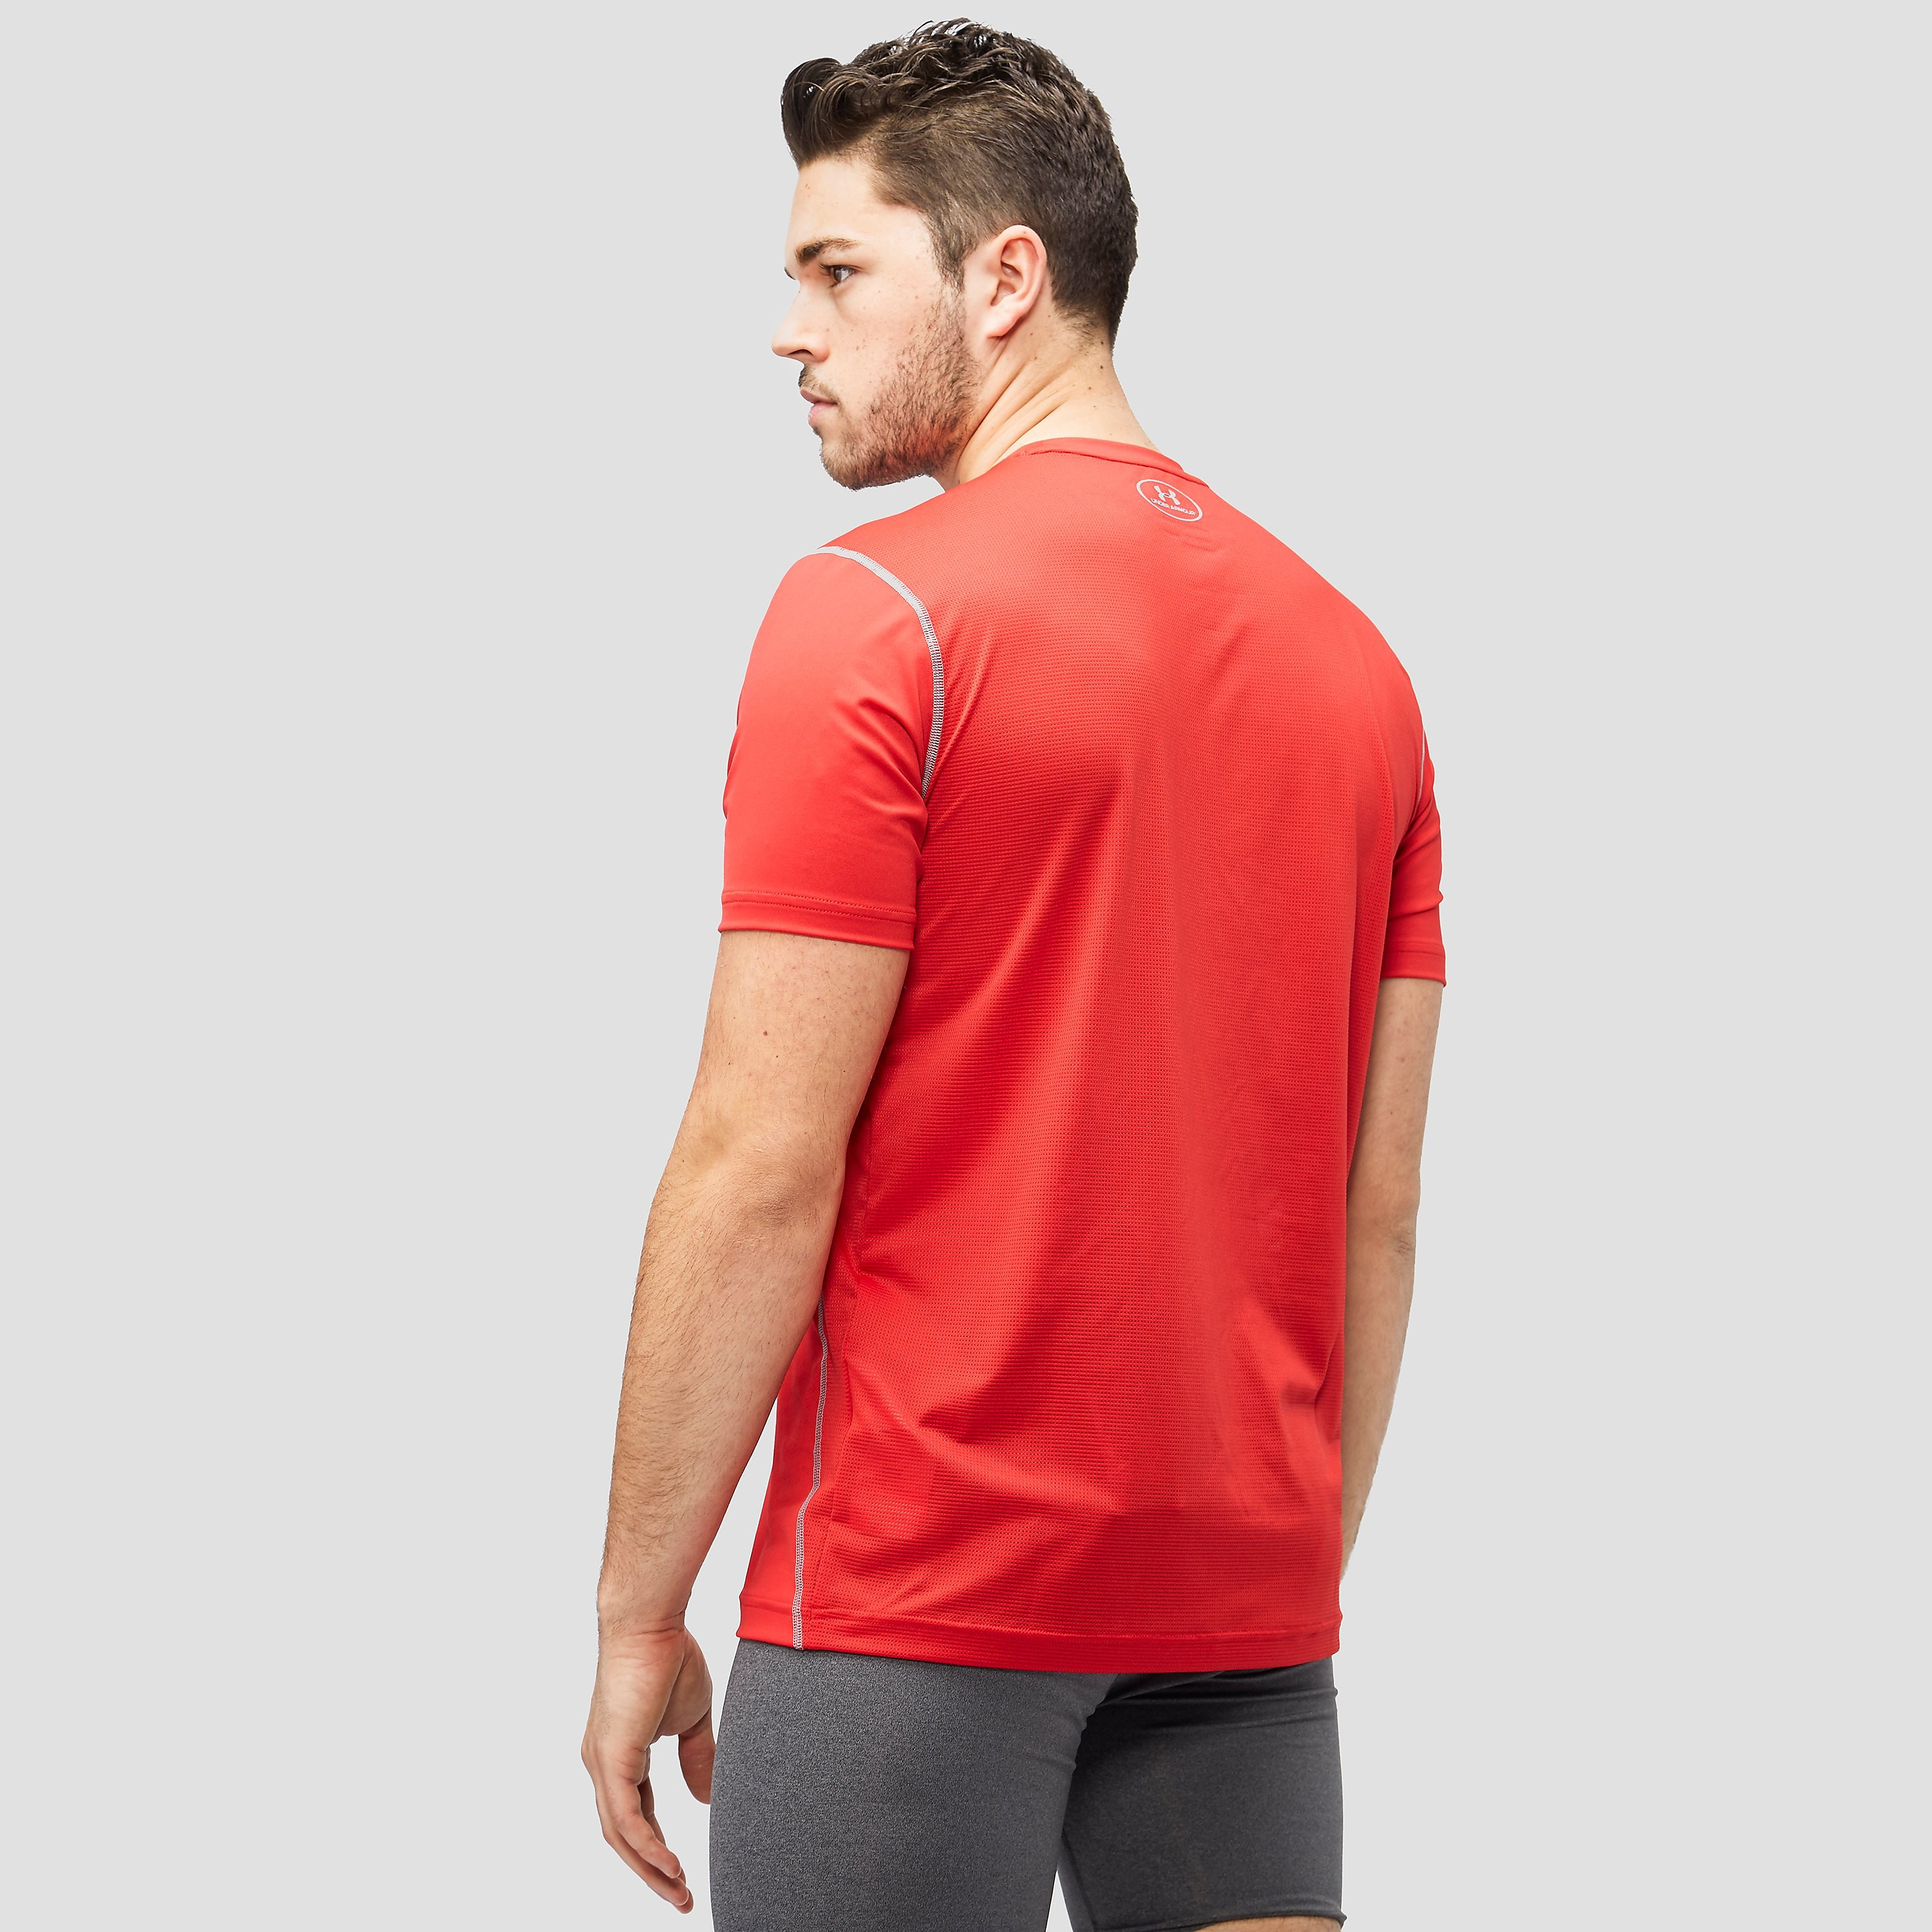 Under Armour Men's Raid Shirt Sleeve T-Shirt